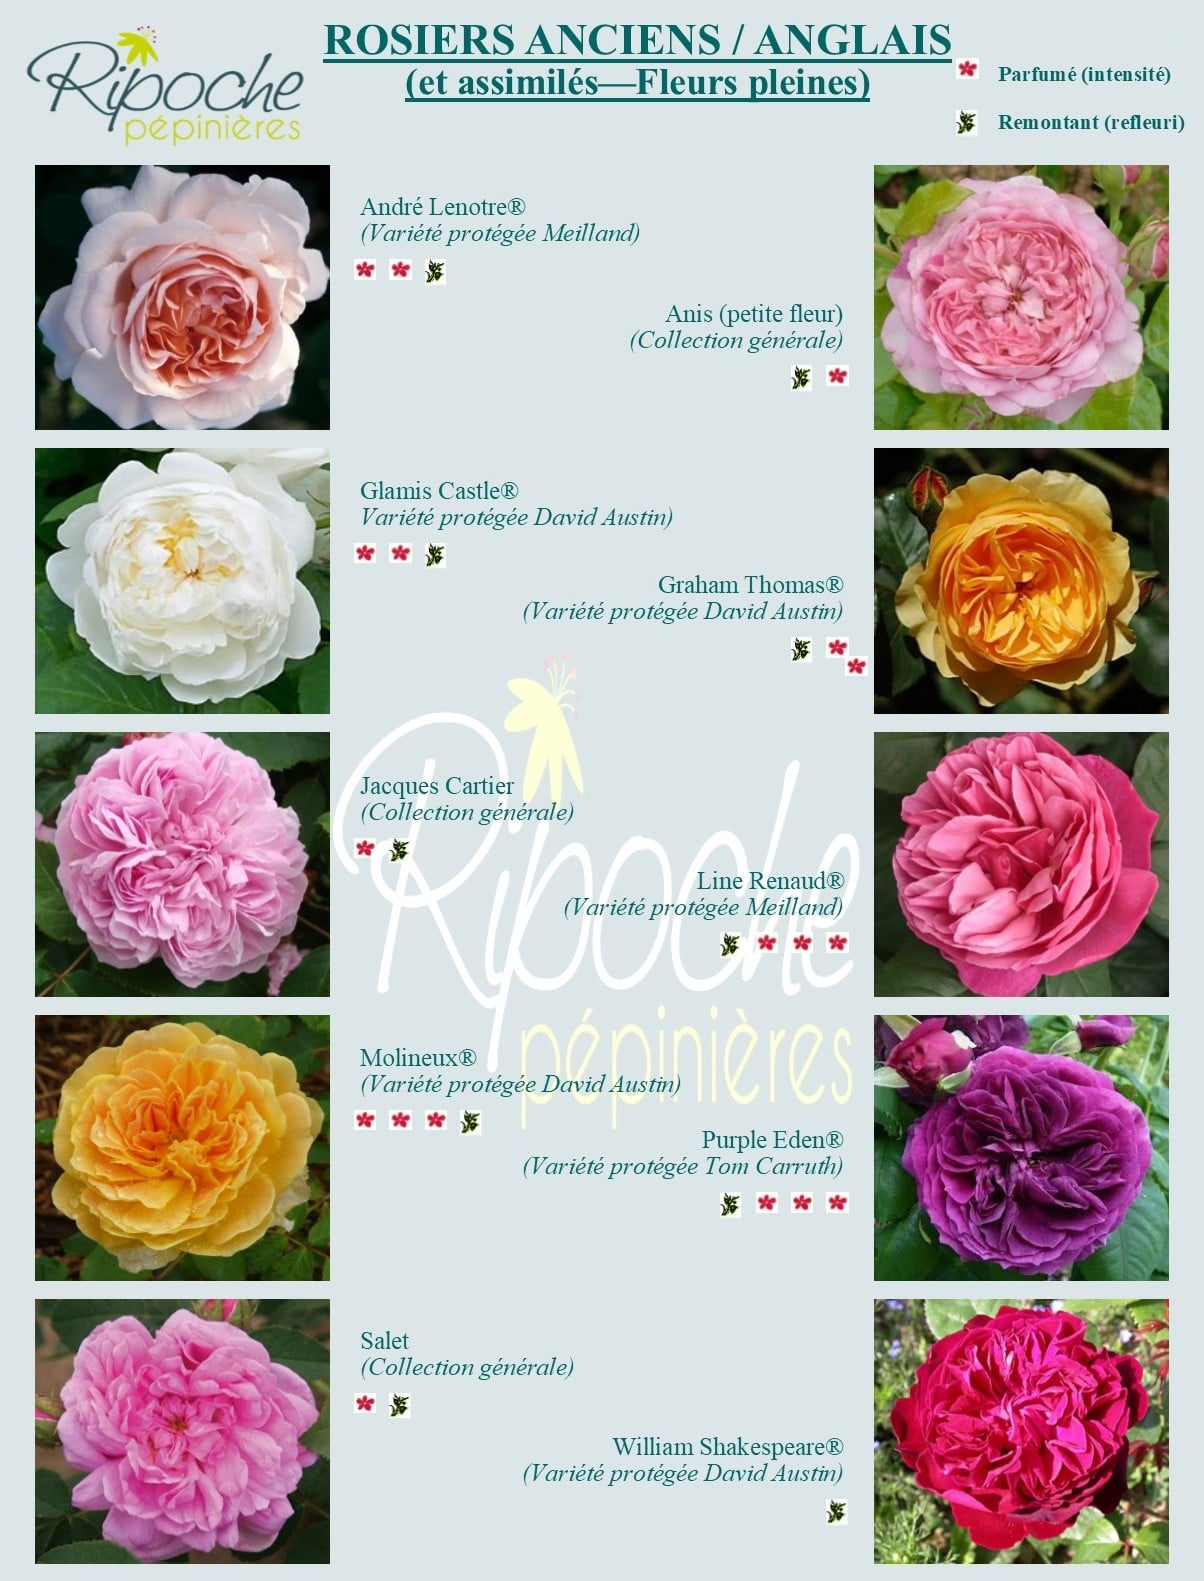 Rosiers anciens/anglais